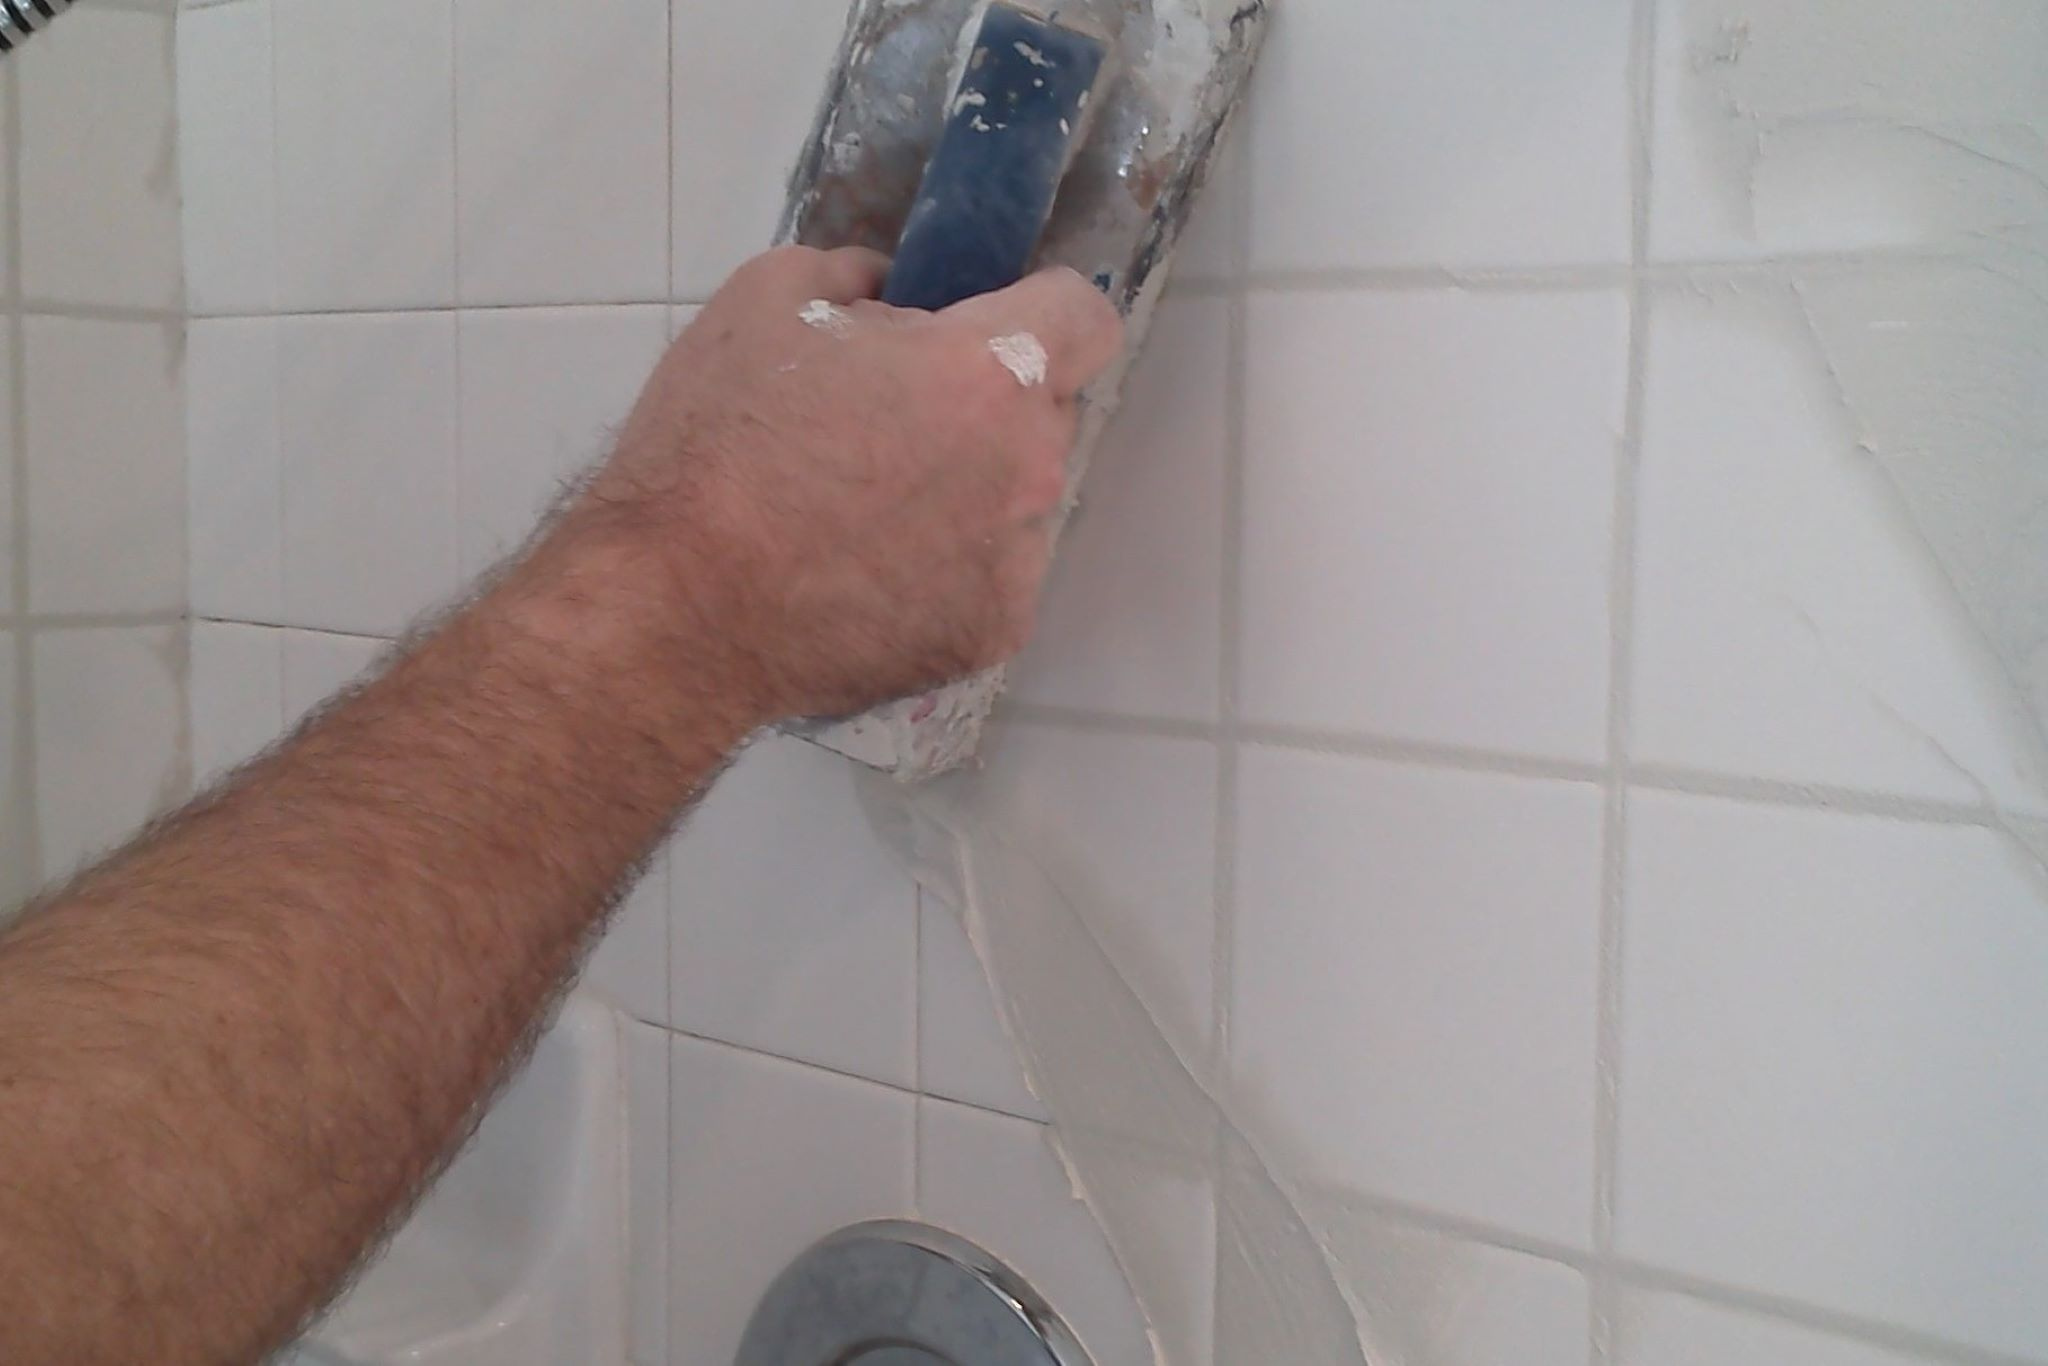 Removing old grout and installing new grout and caulk